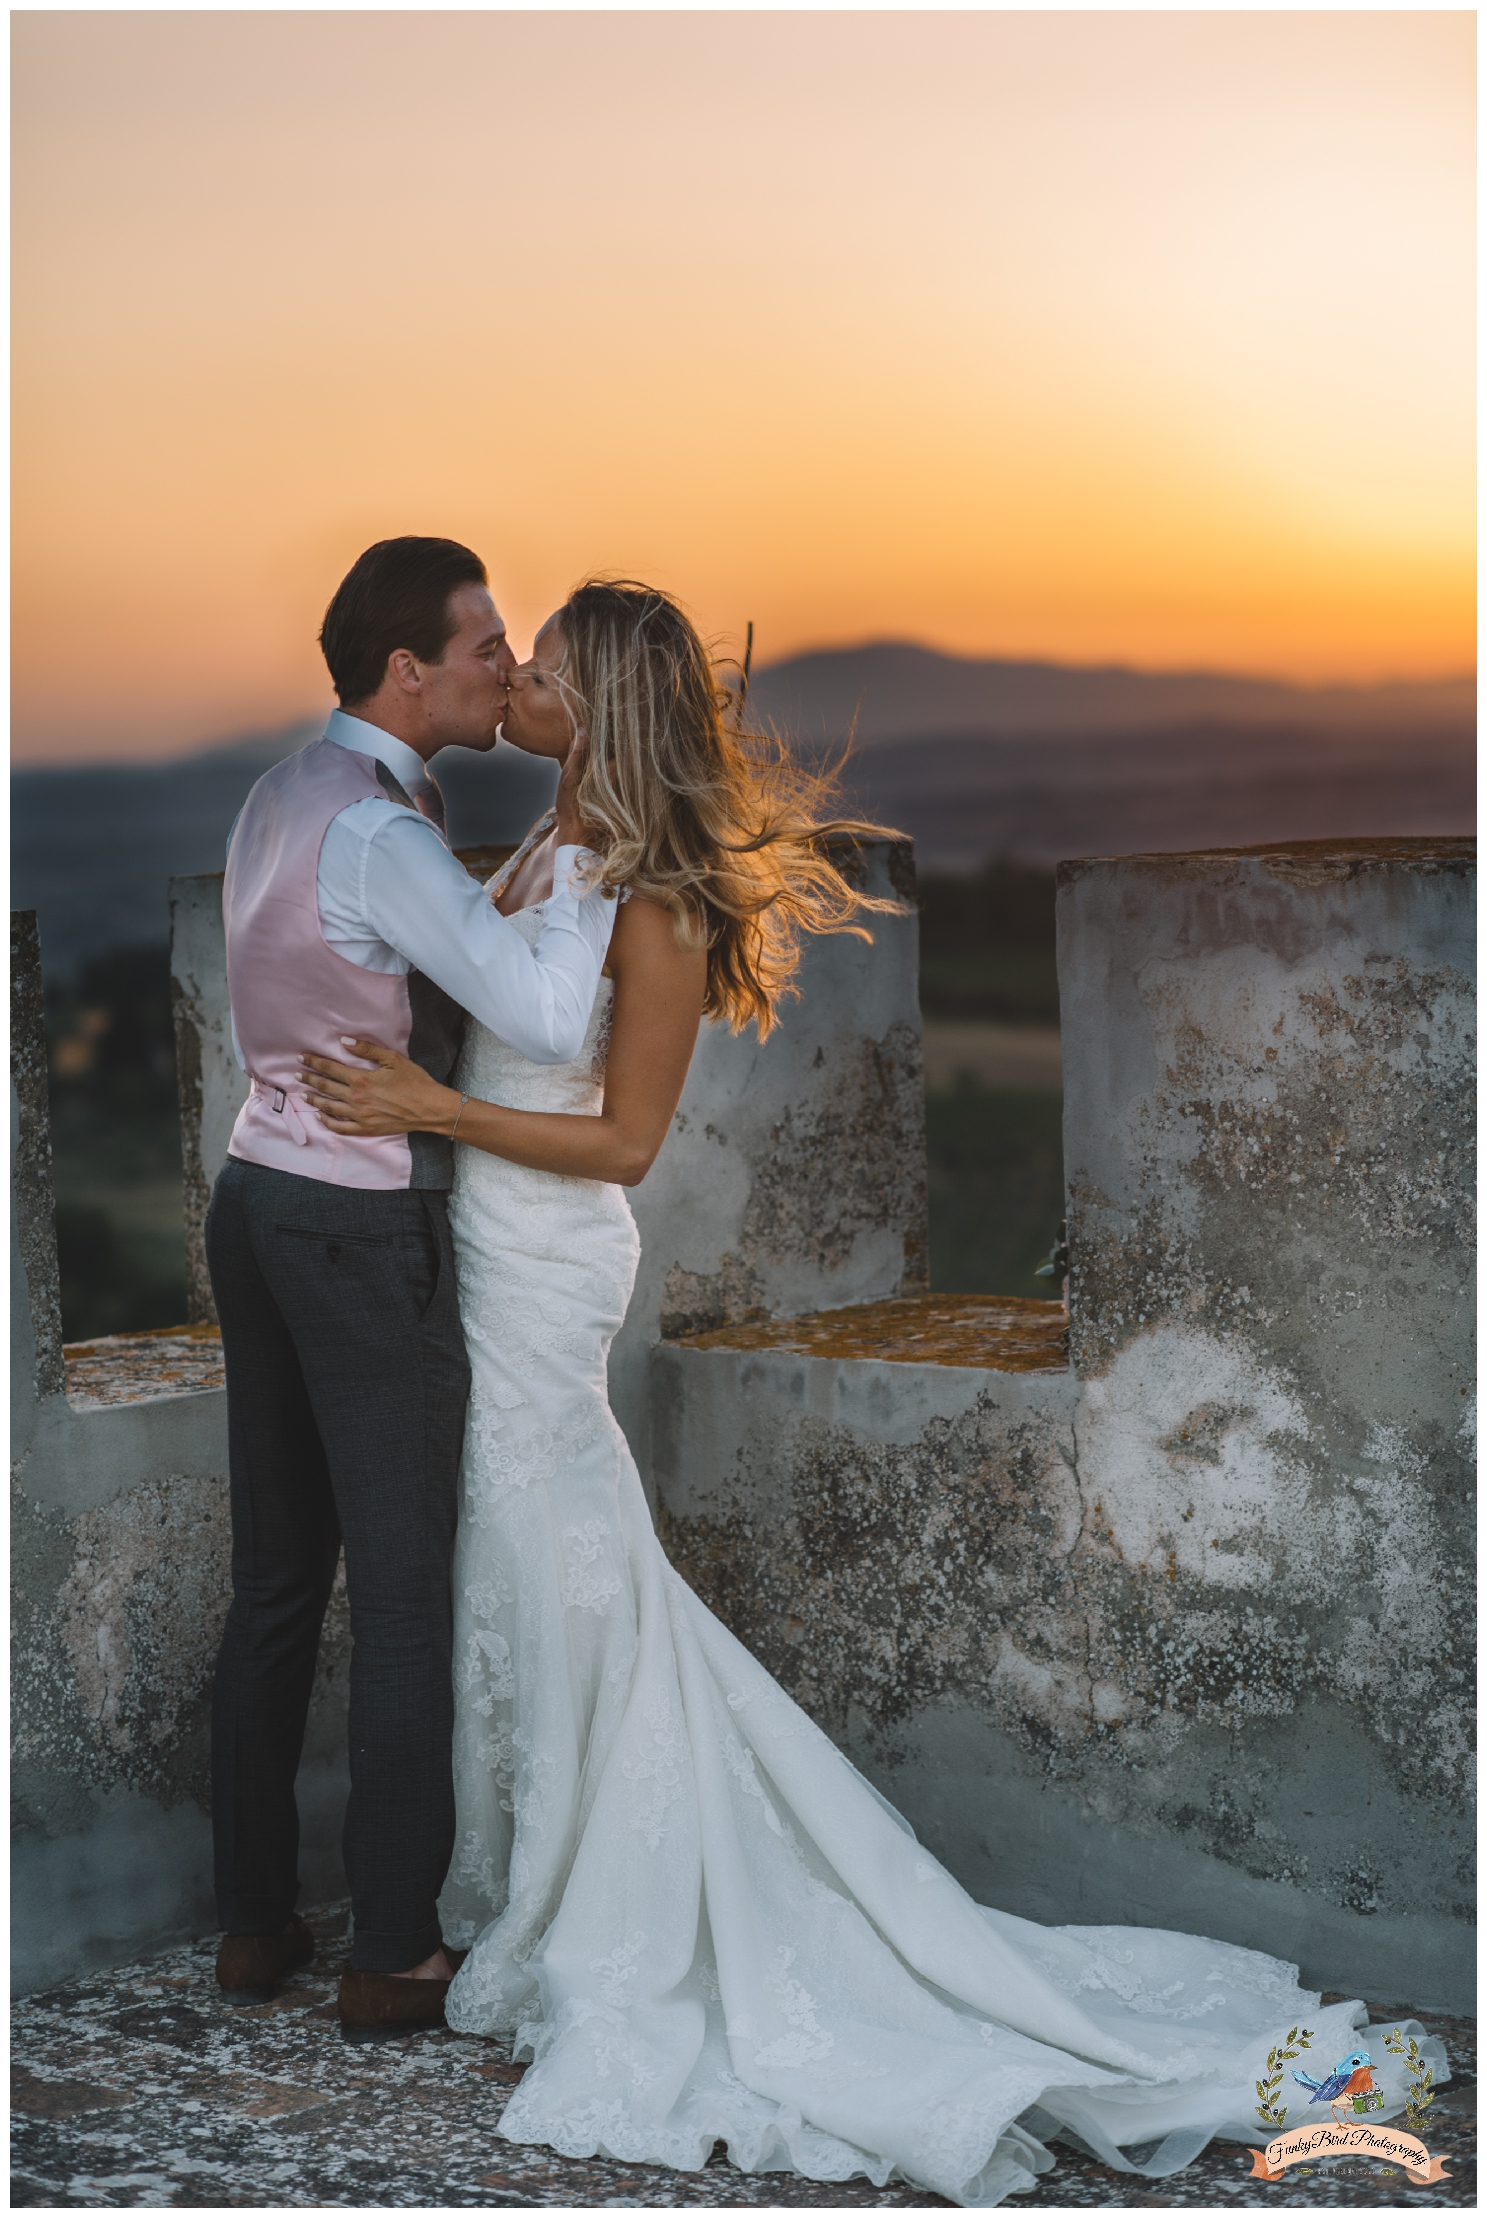 Wedding_Photographer_Tuscany_Florence_Italy_56.jpg